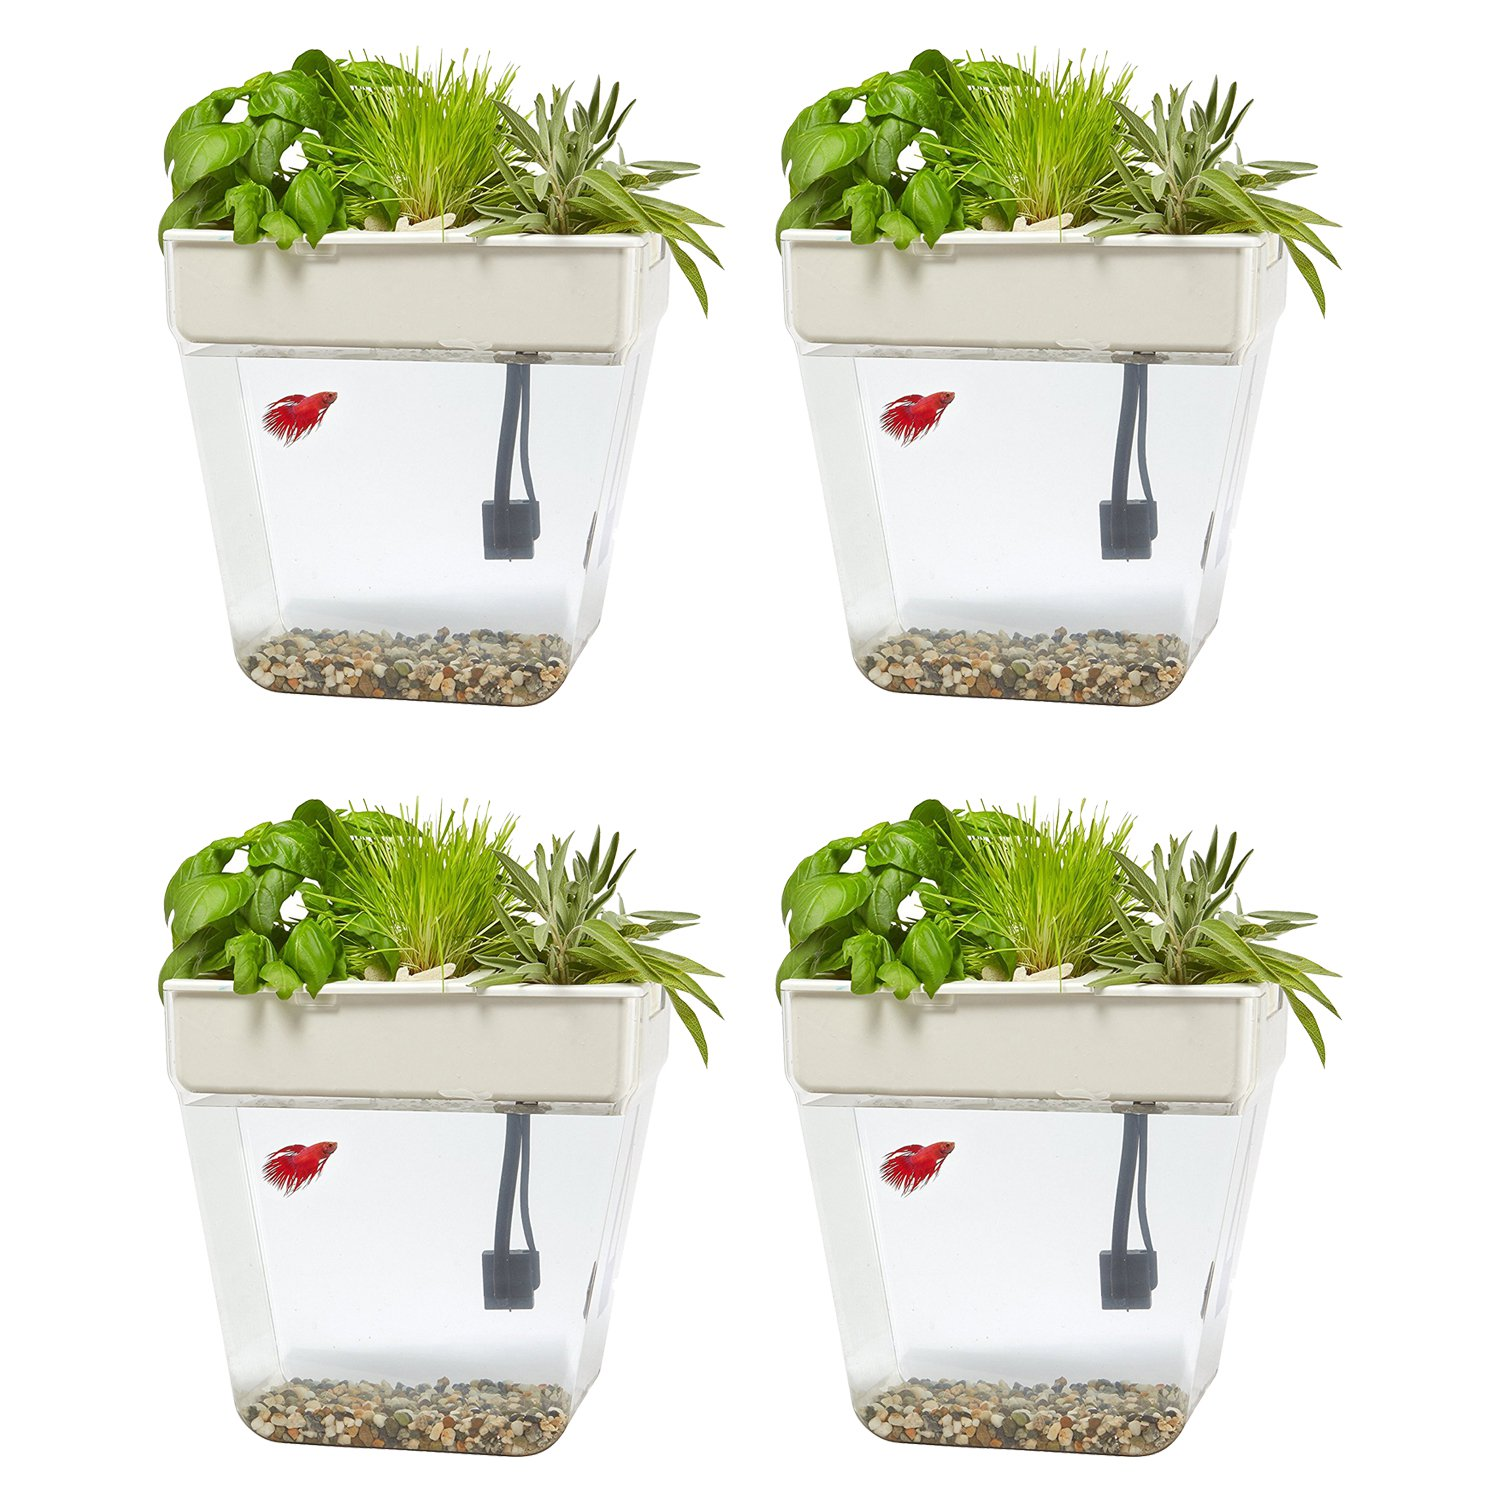 Back to the Roots 3 Gal. Self-Cleaning Aquaponic Water Garden Fish Tank, 4 Pack